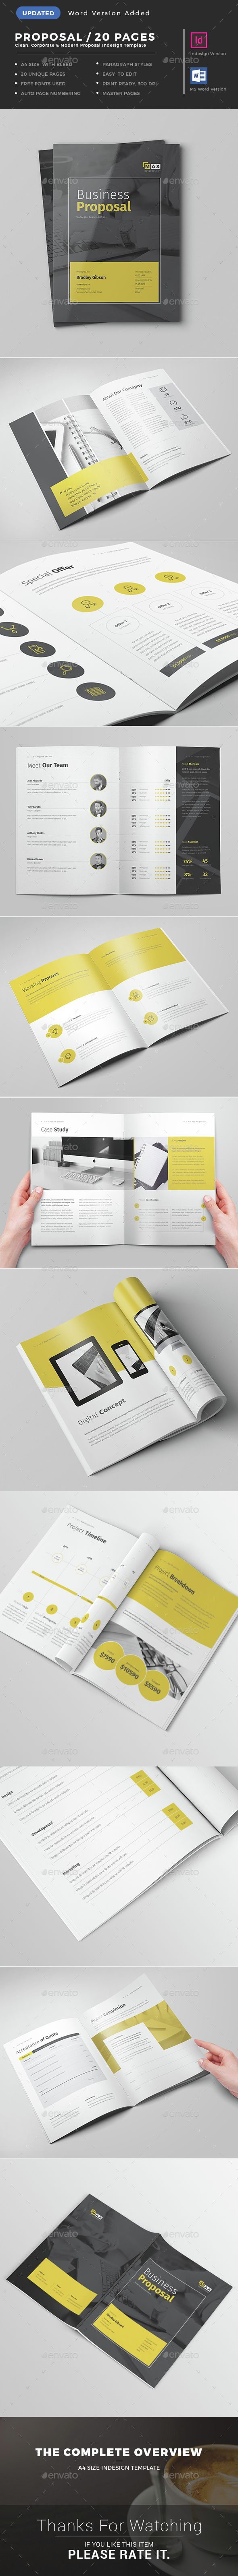 Proposal Template 120 best Business Project